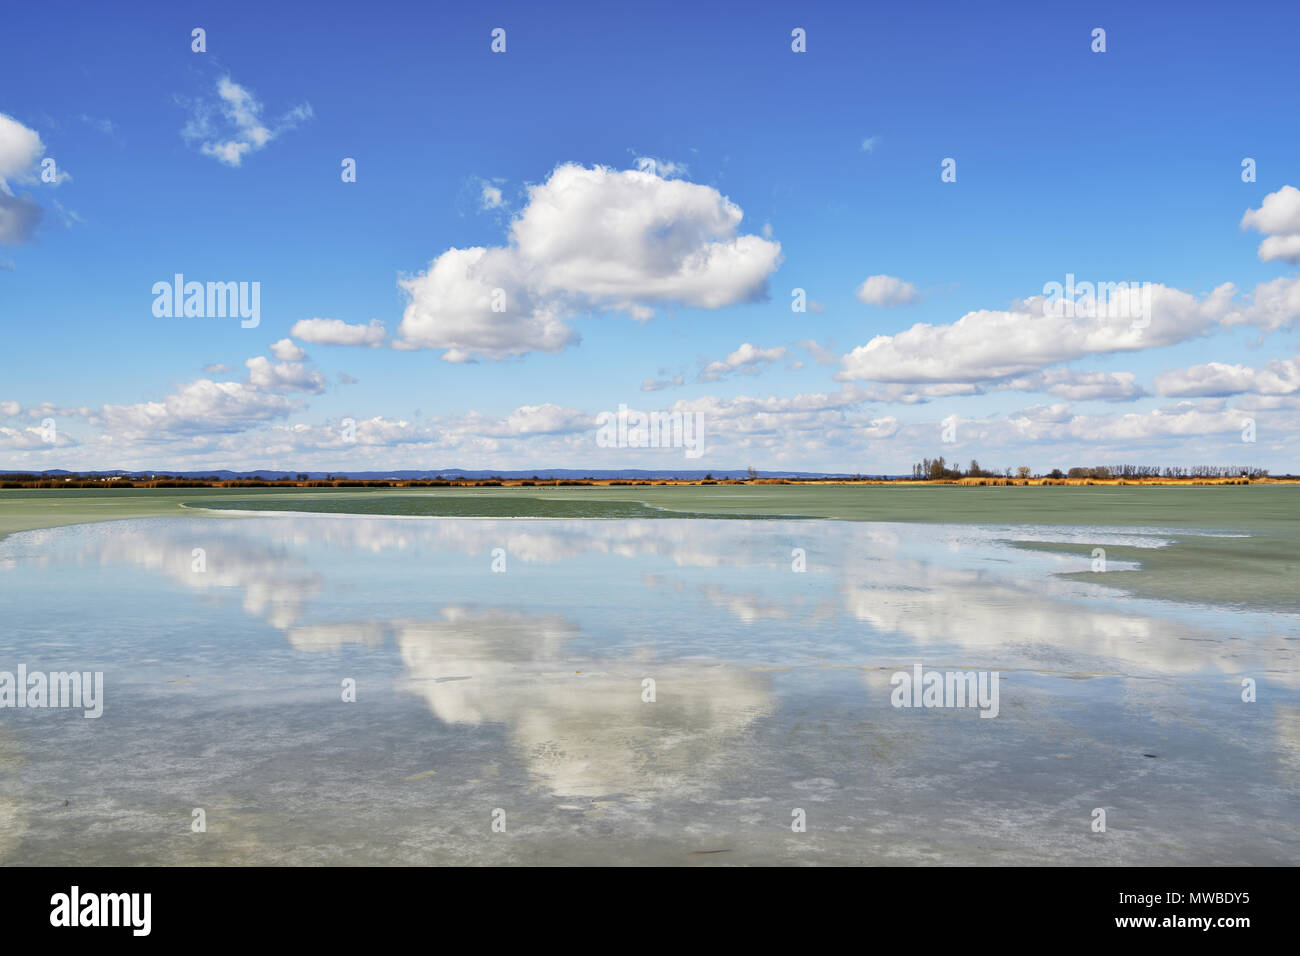 Cloud atmosphere over the half-frozen lake Warmsee, Illmitz, Burgenland, Austria - Stock Image